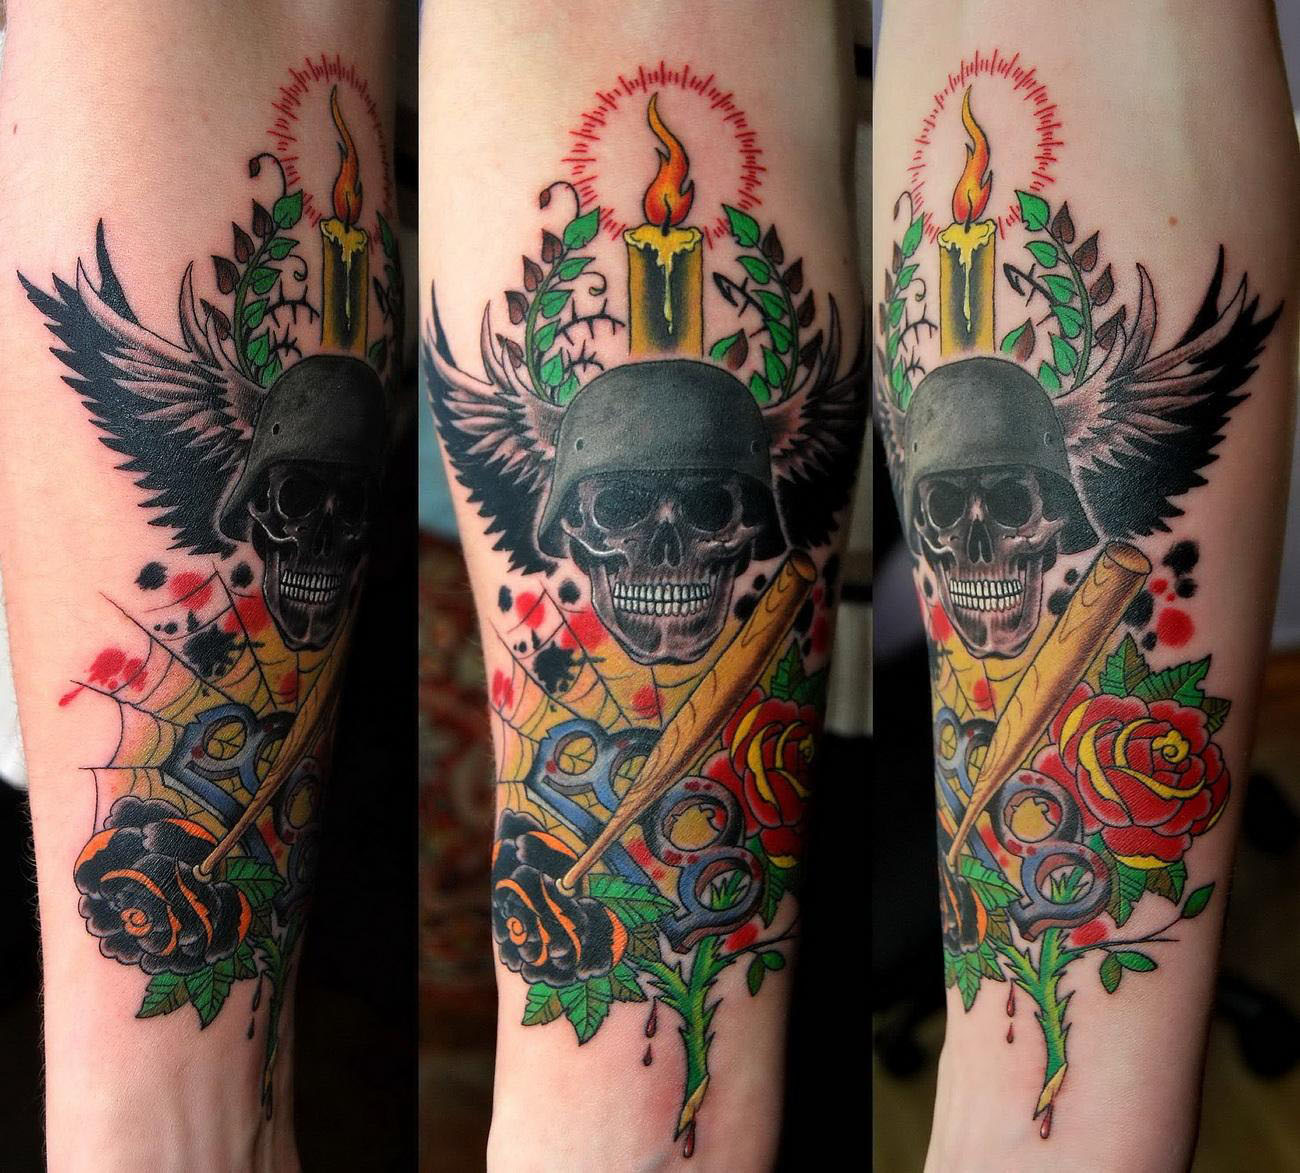 Traditional: 20 Traditional Tattoos Design Ideas For Men And Women